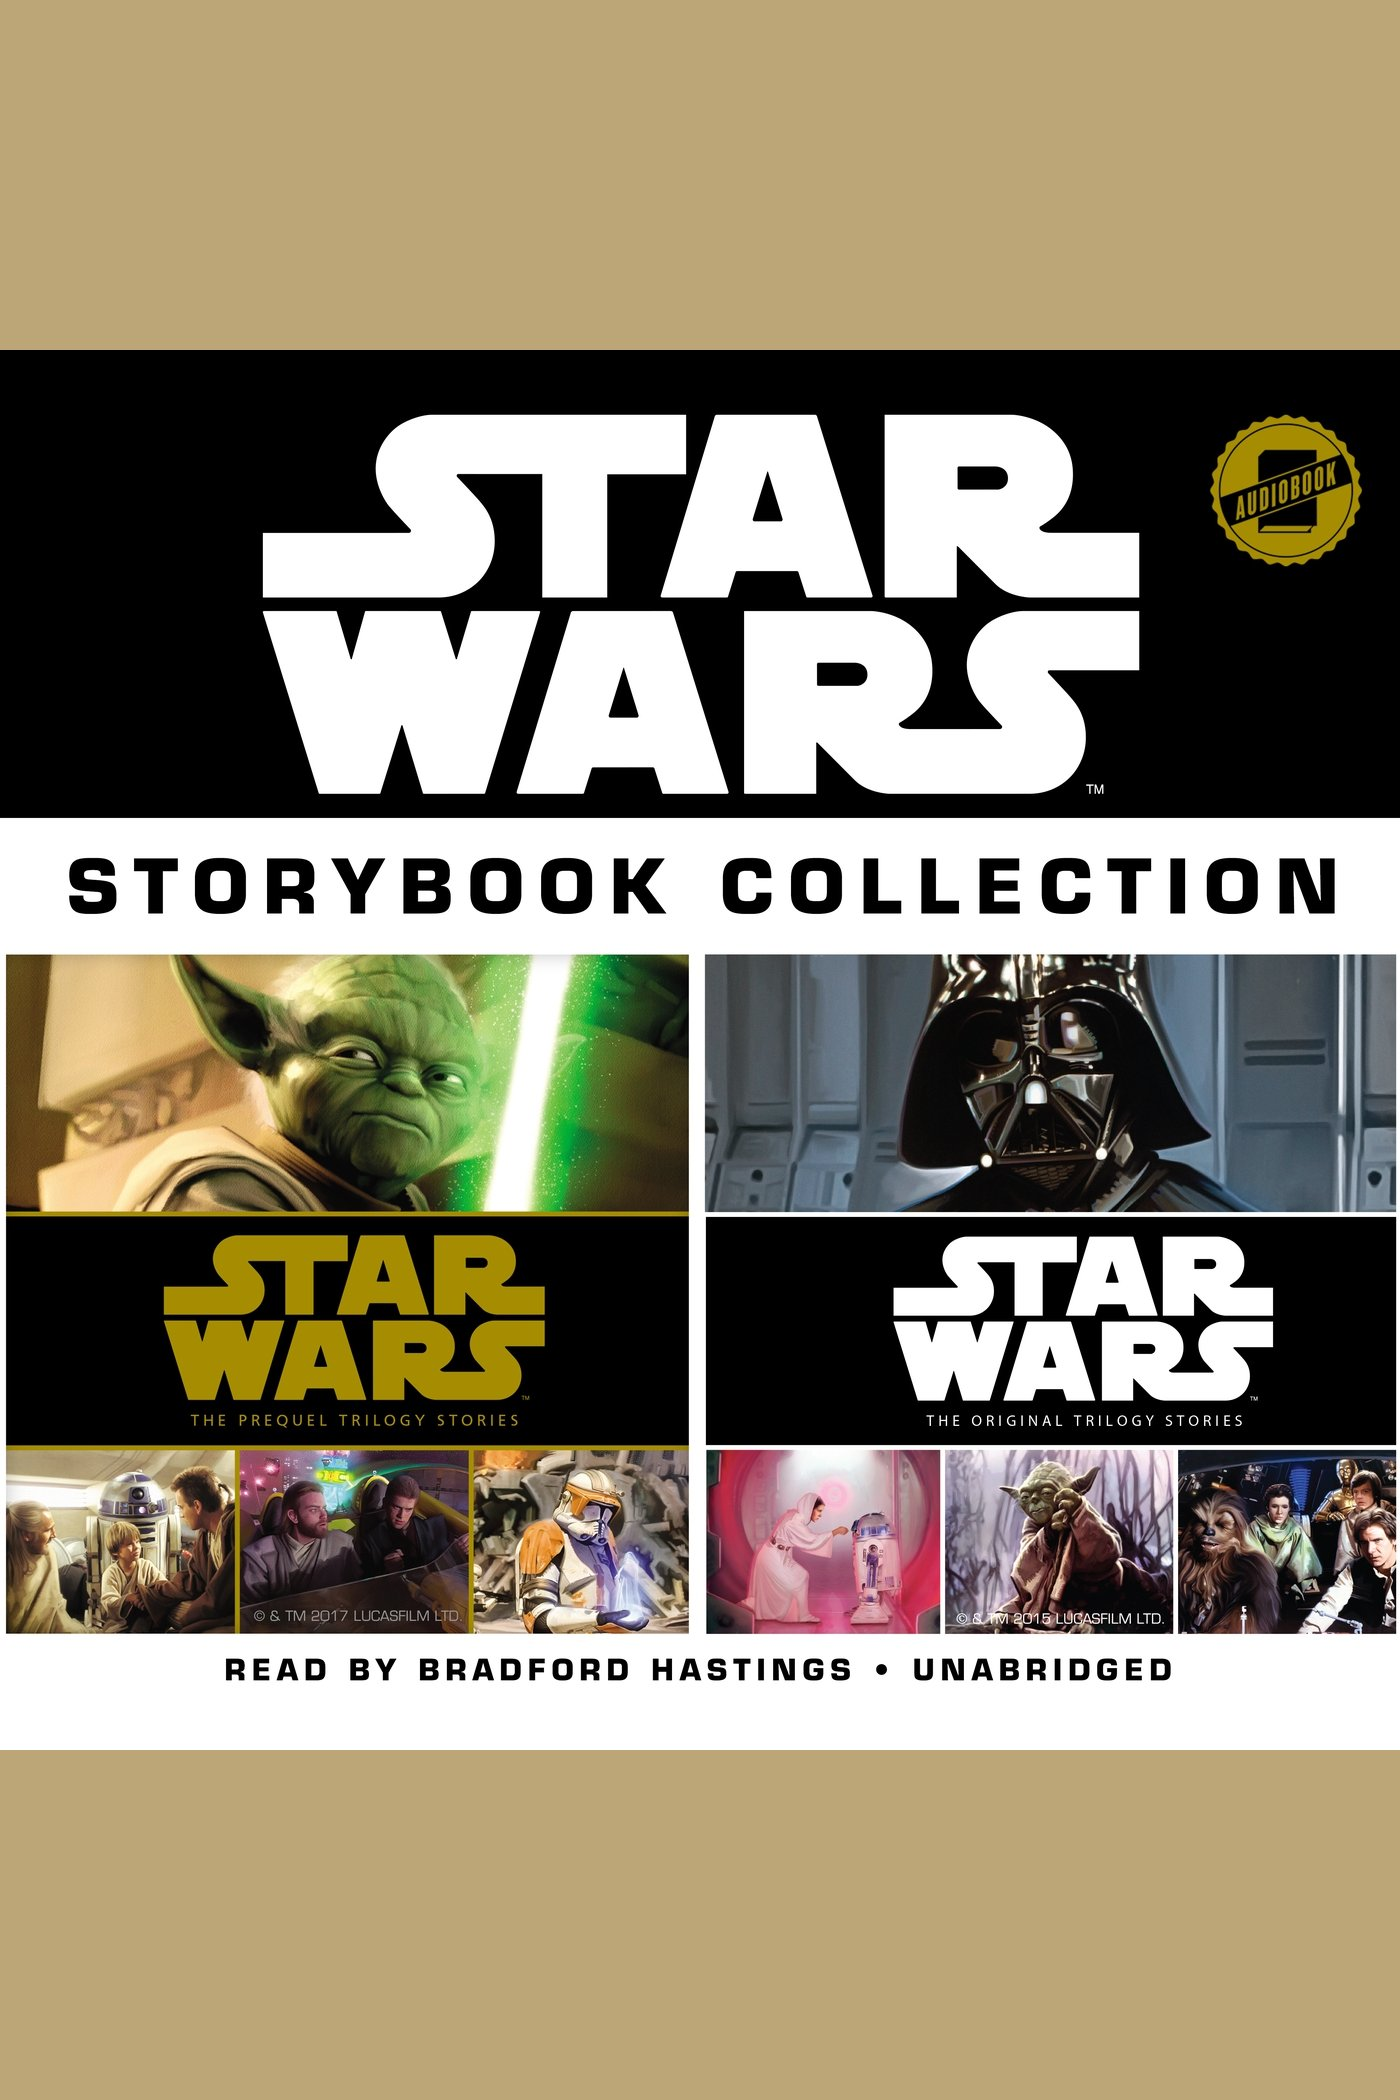 Star Wars Storybook Collection Star Wars: The Prequel Trilogy Stories and Star Wars: The Original Trilogy Stories